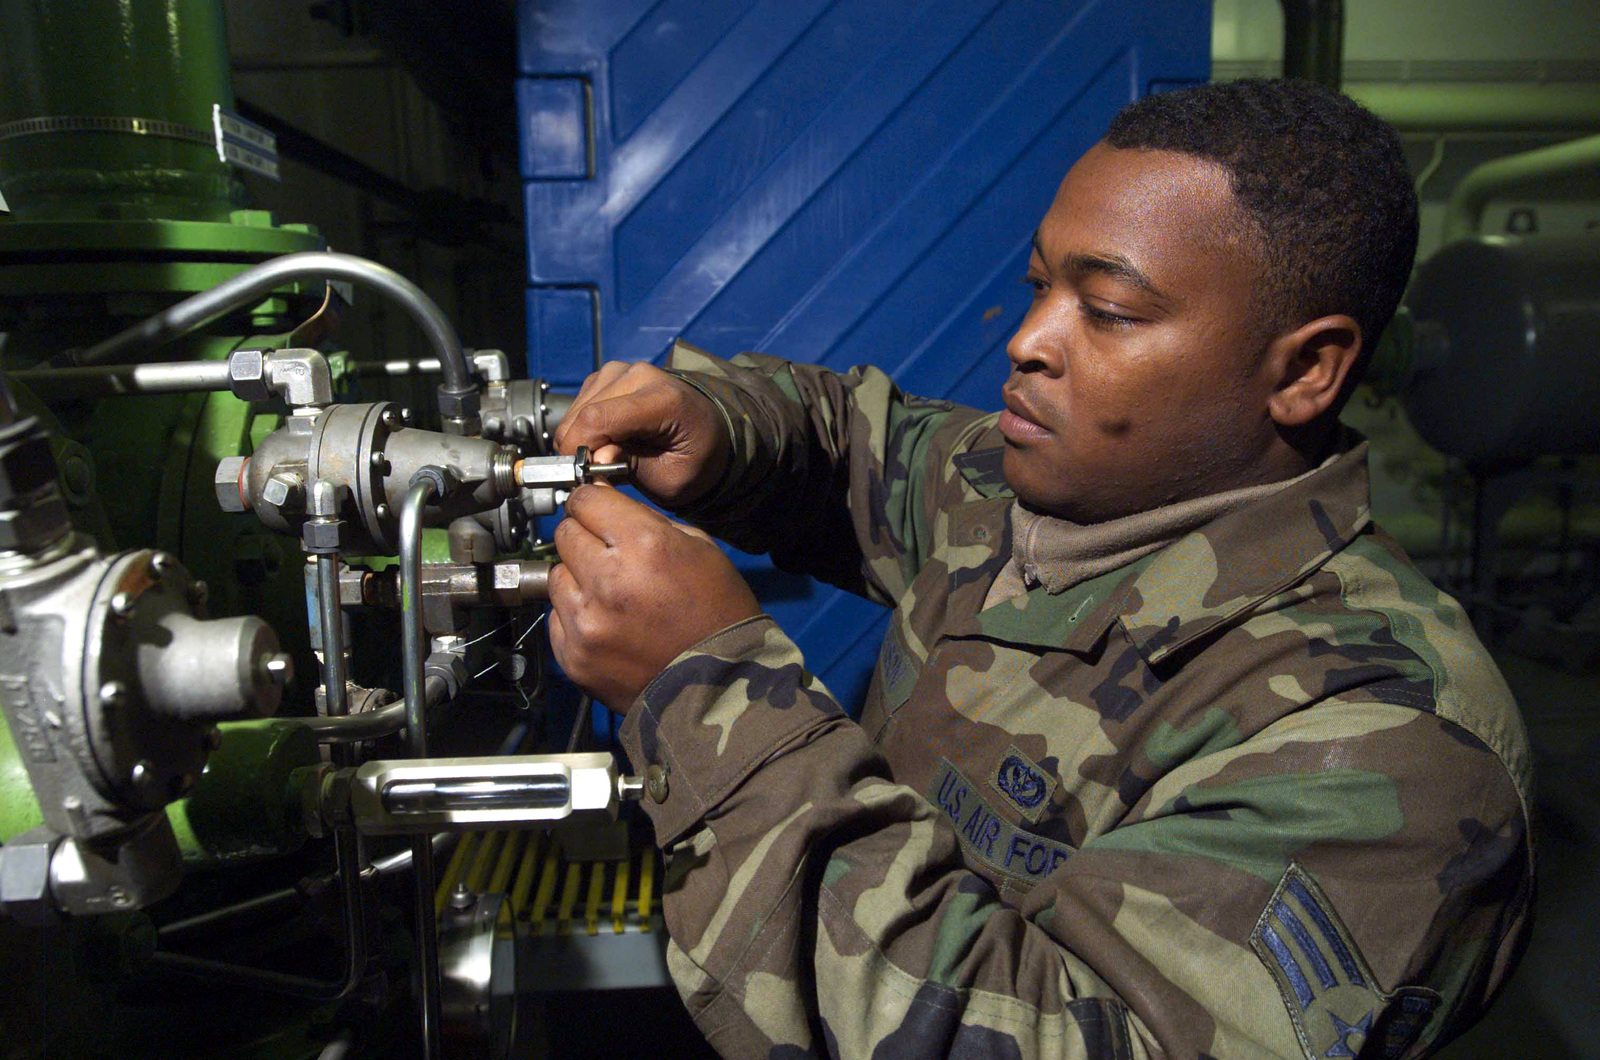 US Air Force (USAF) SENIOR AIRMAN (SRA) Jerome Stevenson, with the 52nd Civil Engineering Squadron (CES), with a liquid fuels maintenance unit, adjusts the rate of flow on a valve, at Spangdahlem Air Base (AB), Germany